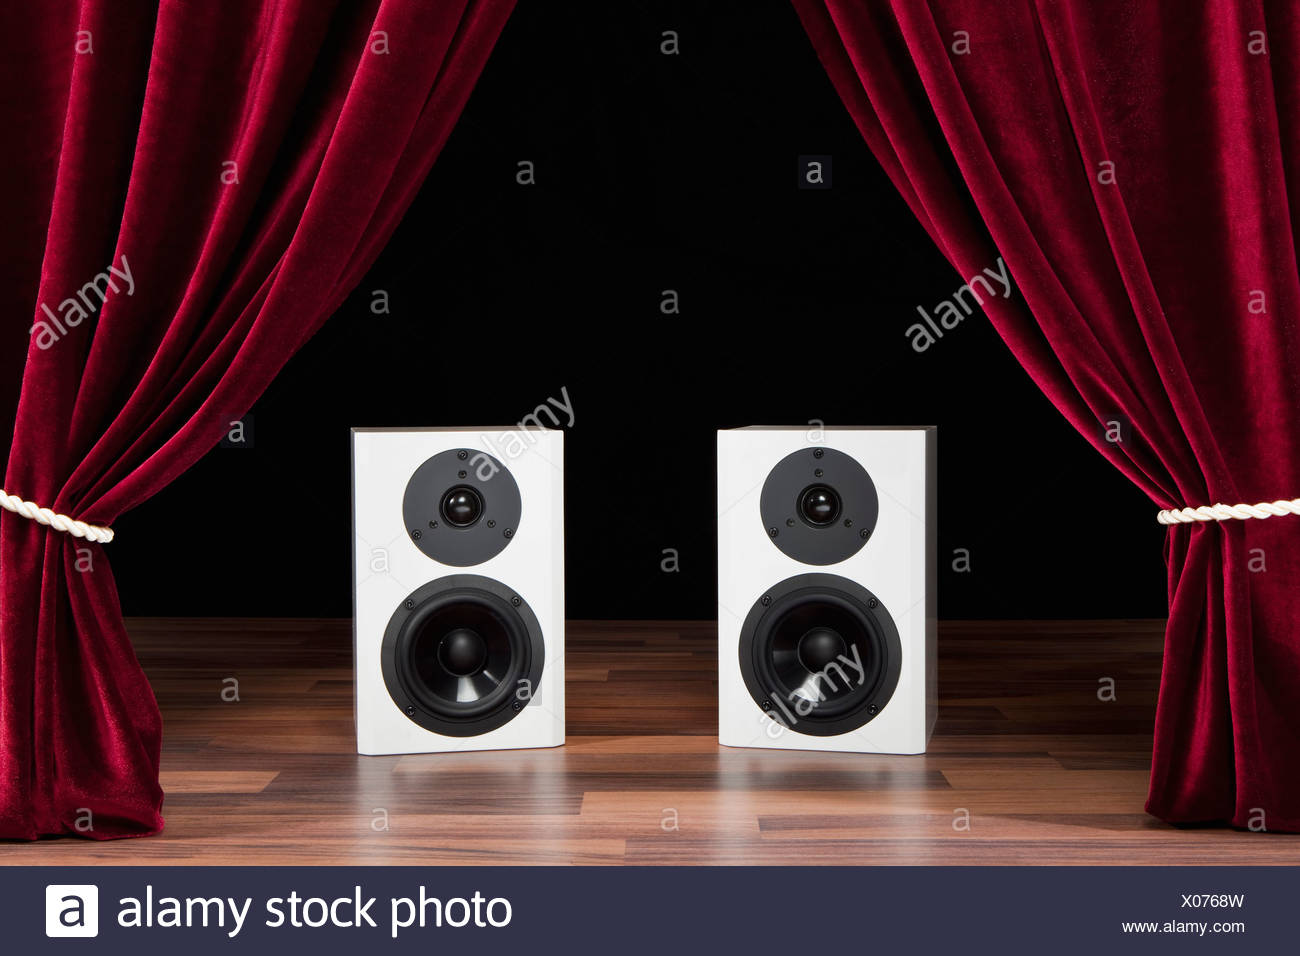 Two Audio Speakers On A Theatre Stage Stock Photo